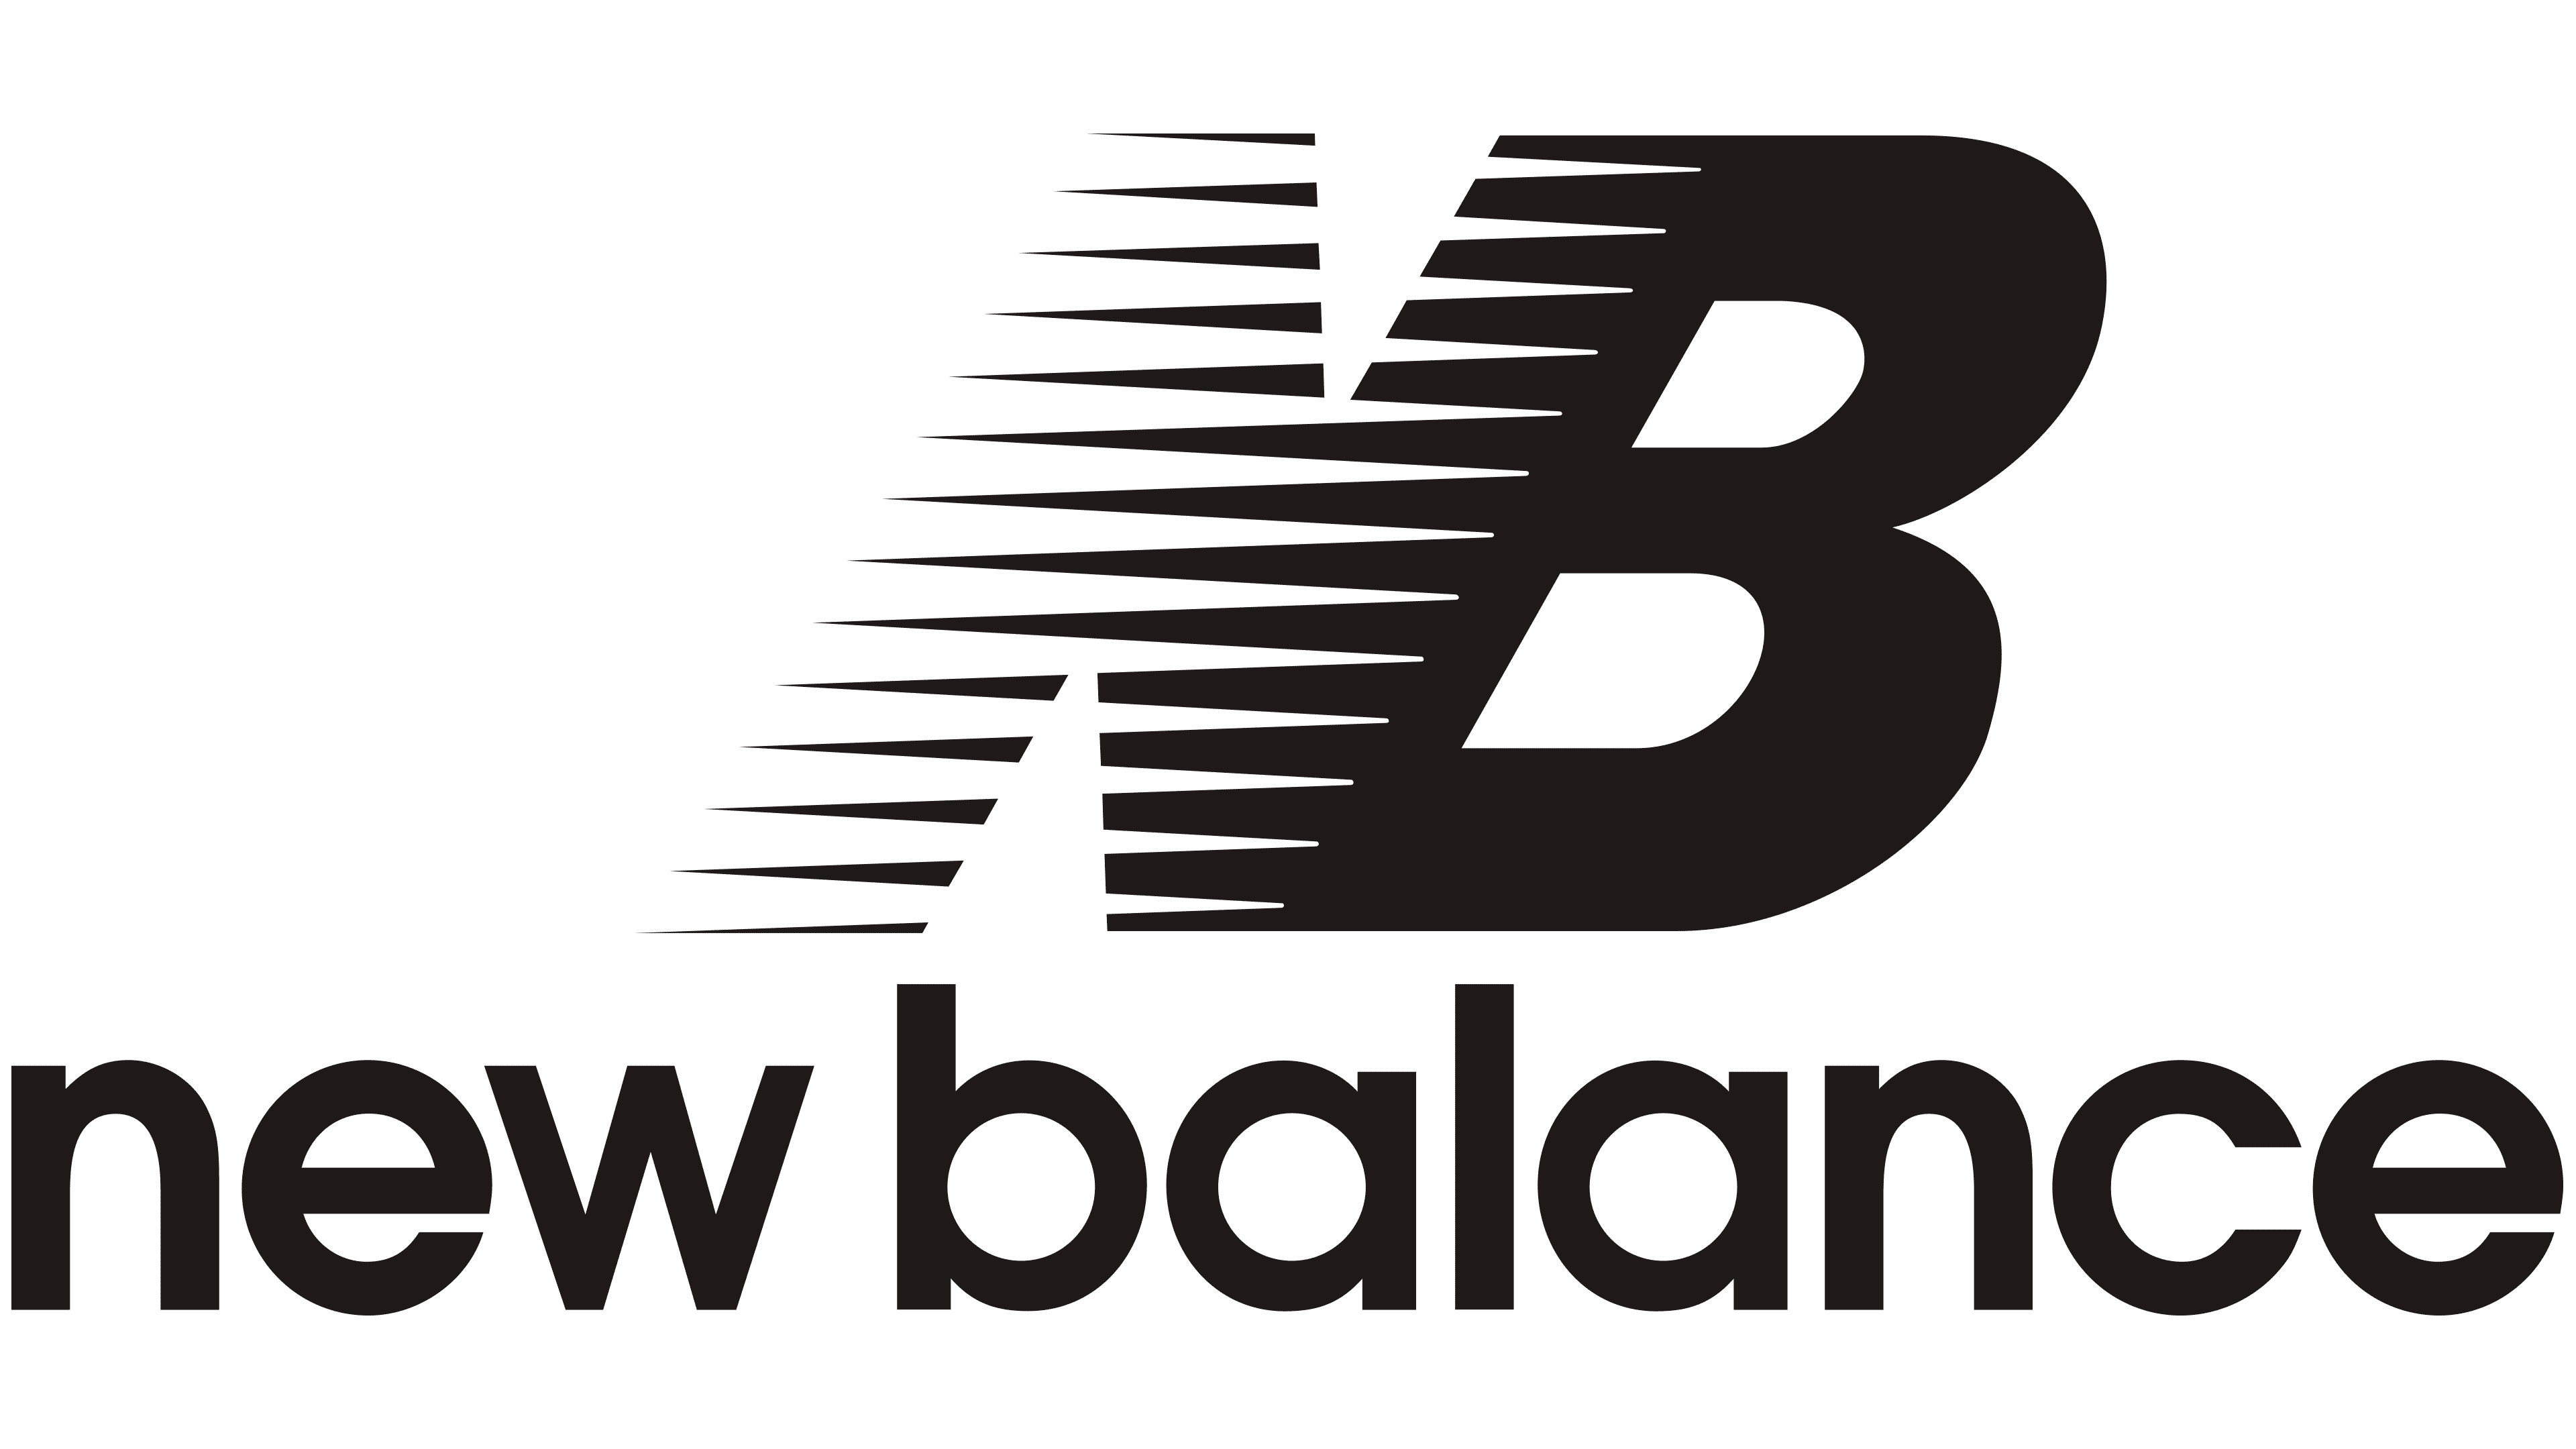 Geografía Alrededores enfermo  New Balance Logo | The most famous brands and company logos in the world